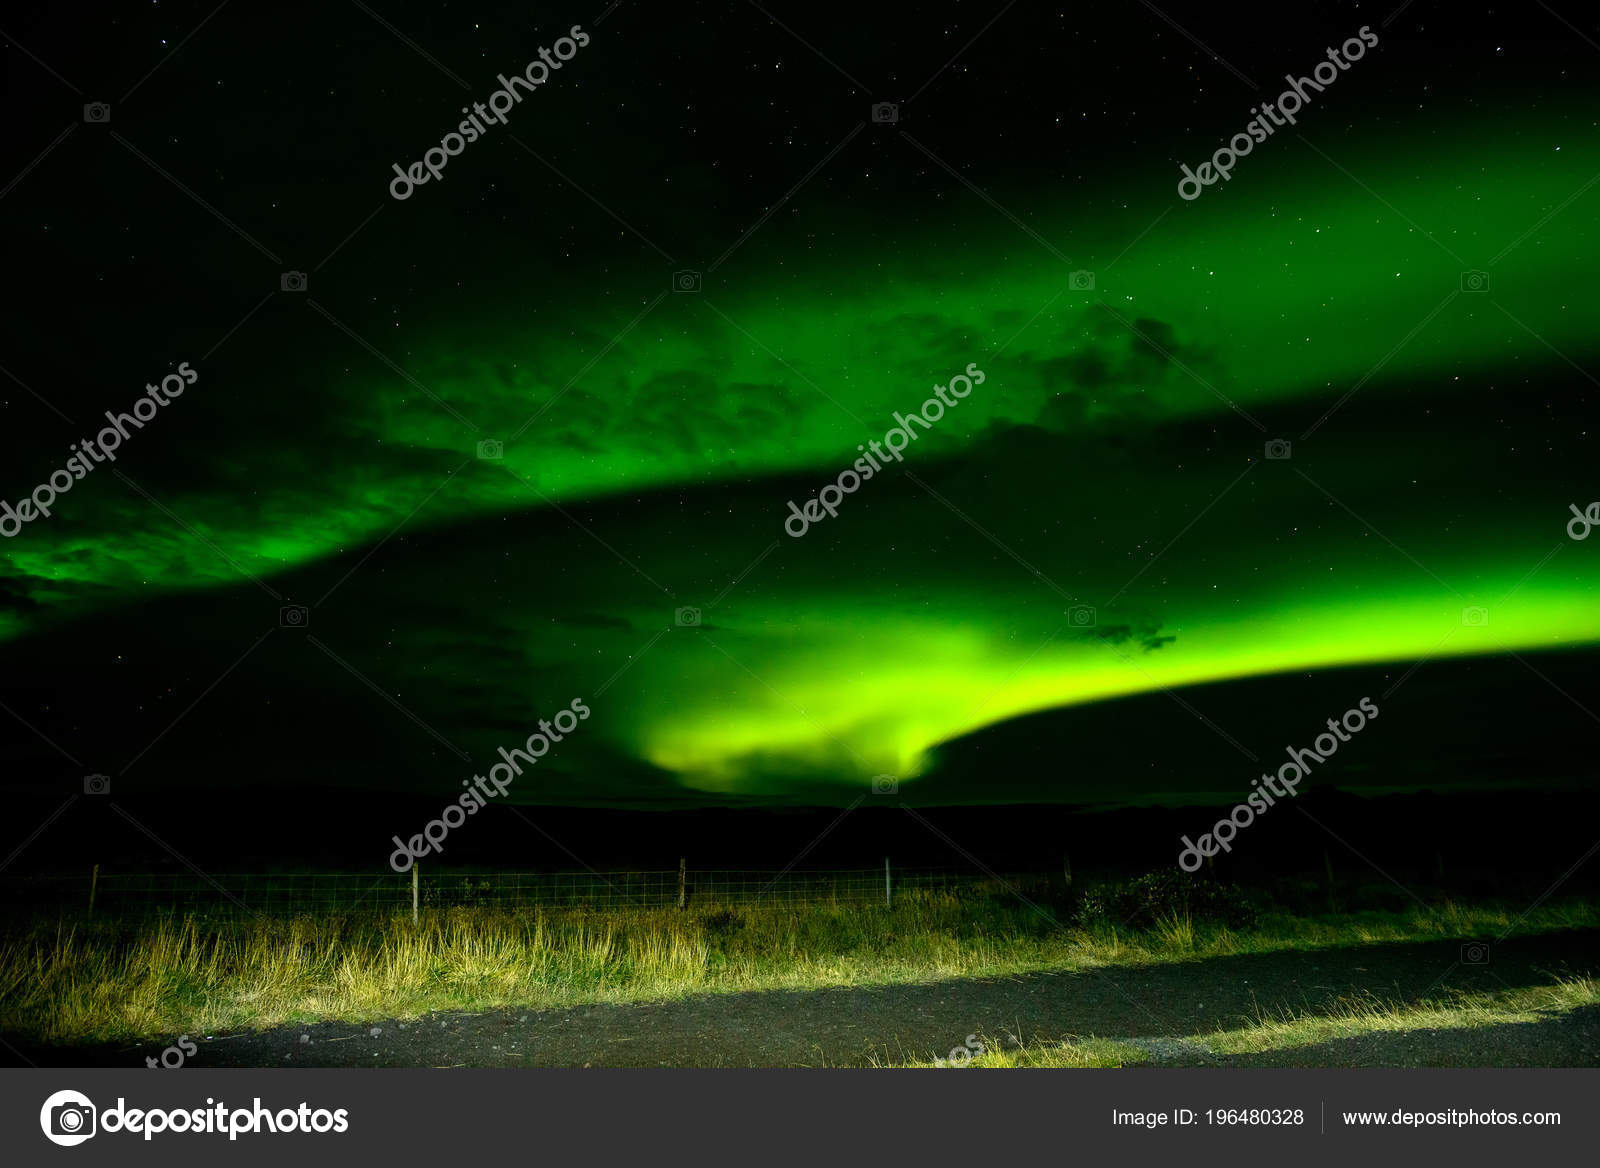 Amazing Northern Lights Iceland Sky Bright Dancing Lights Aurora